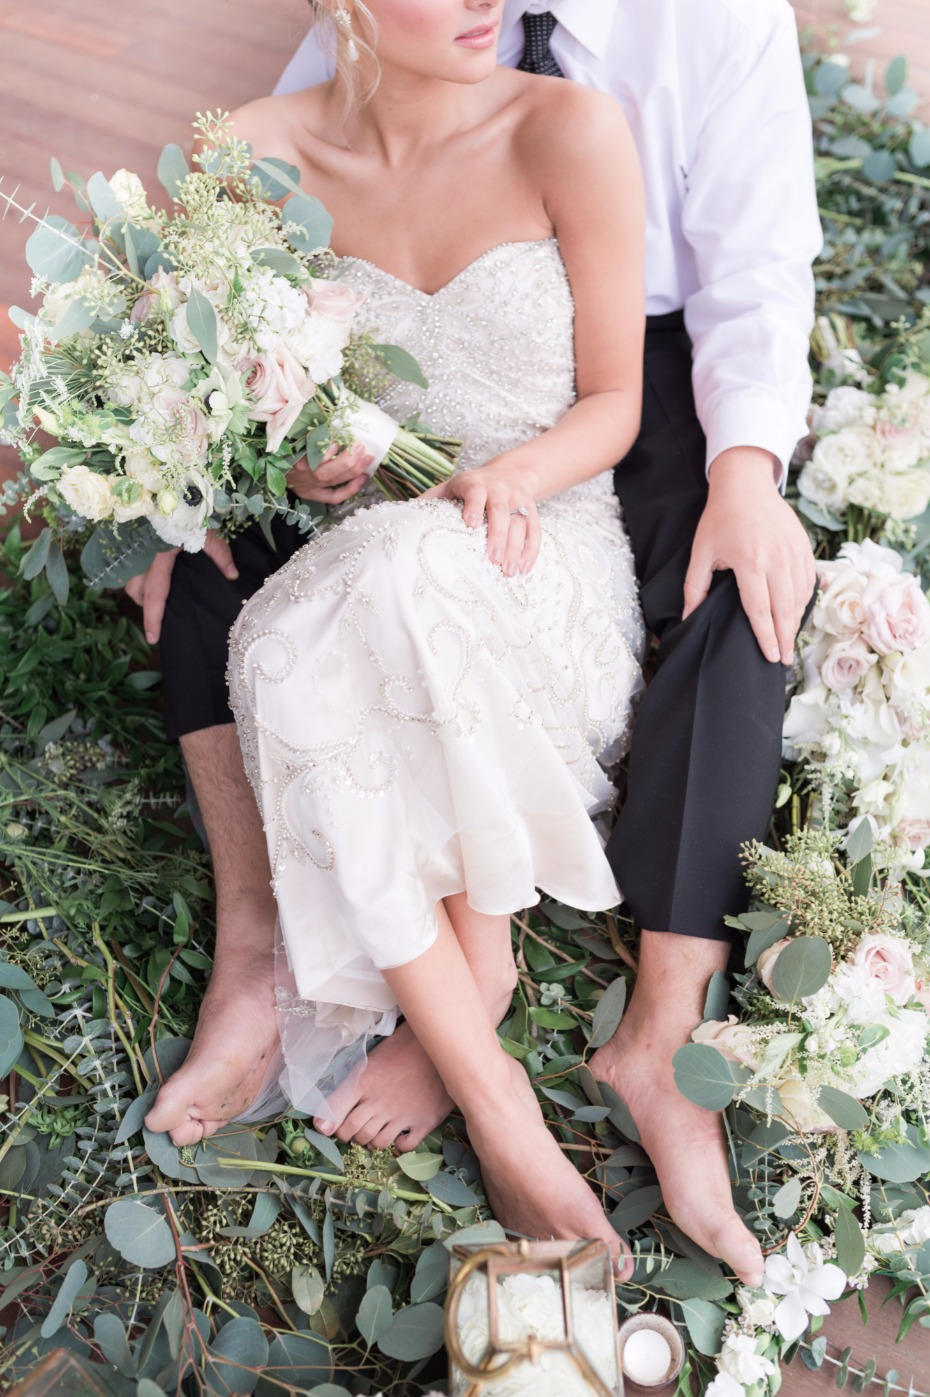 romantic bride and groom wedding photo idea